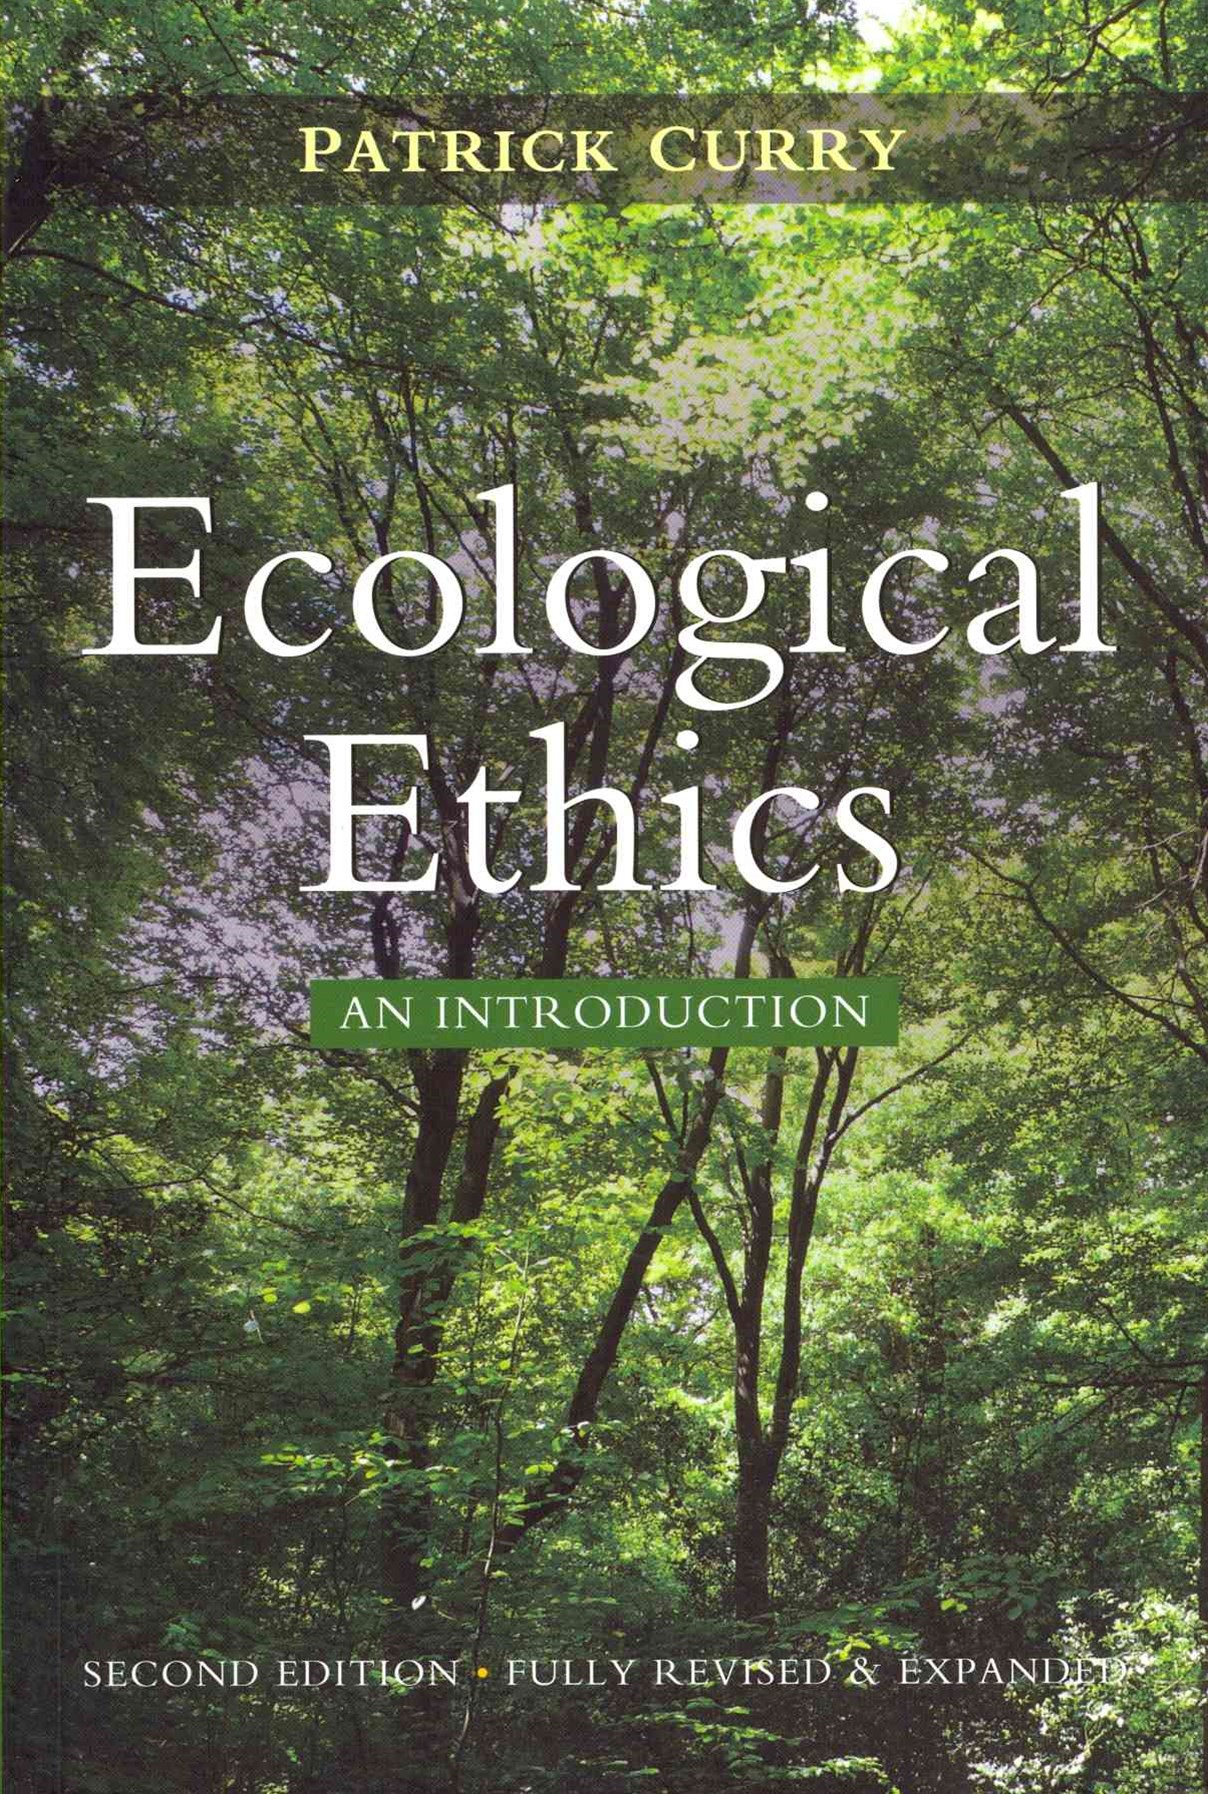 Ecological Ethics - an Introduction 2E